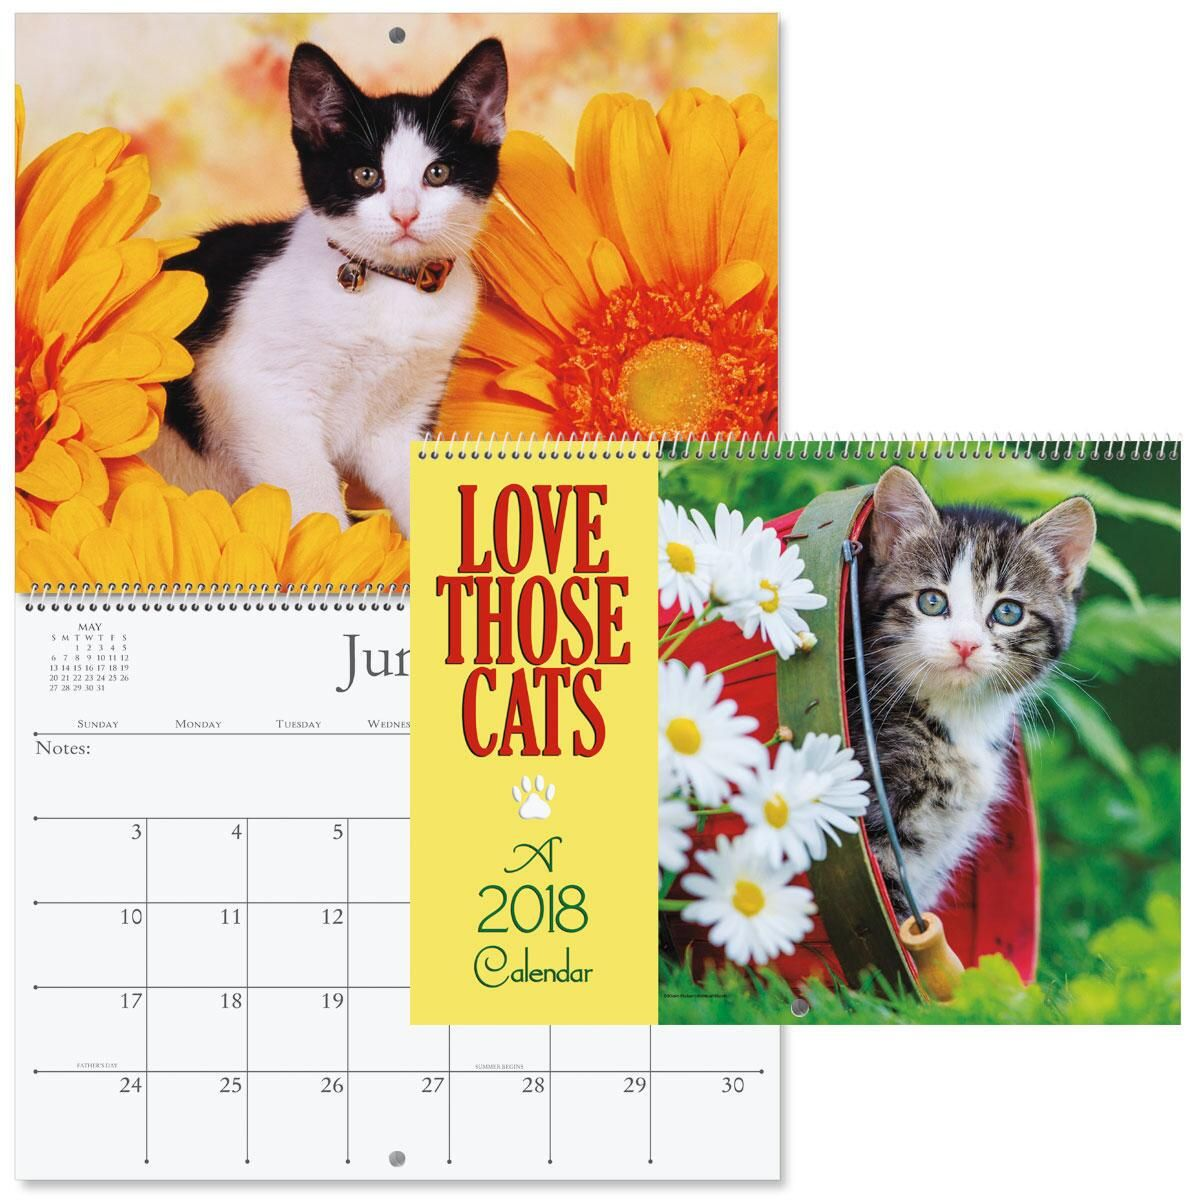 2018 Love Those Cats Wall Calendar